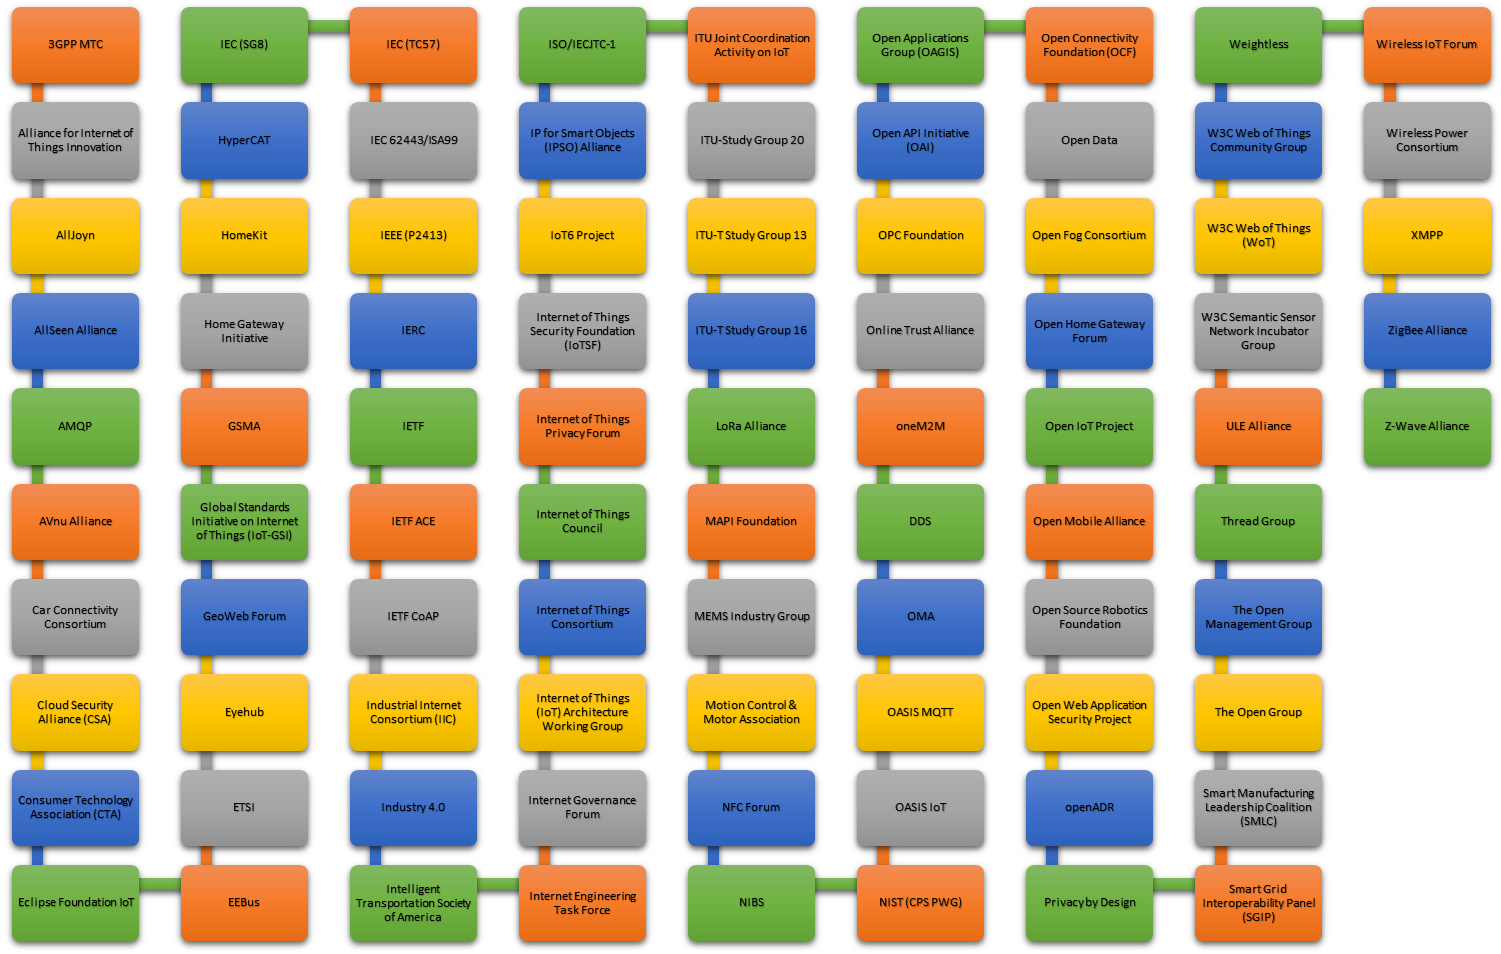 Internet of Things standards, consortiums and alliances